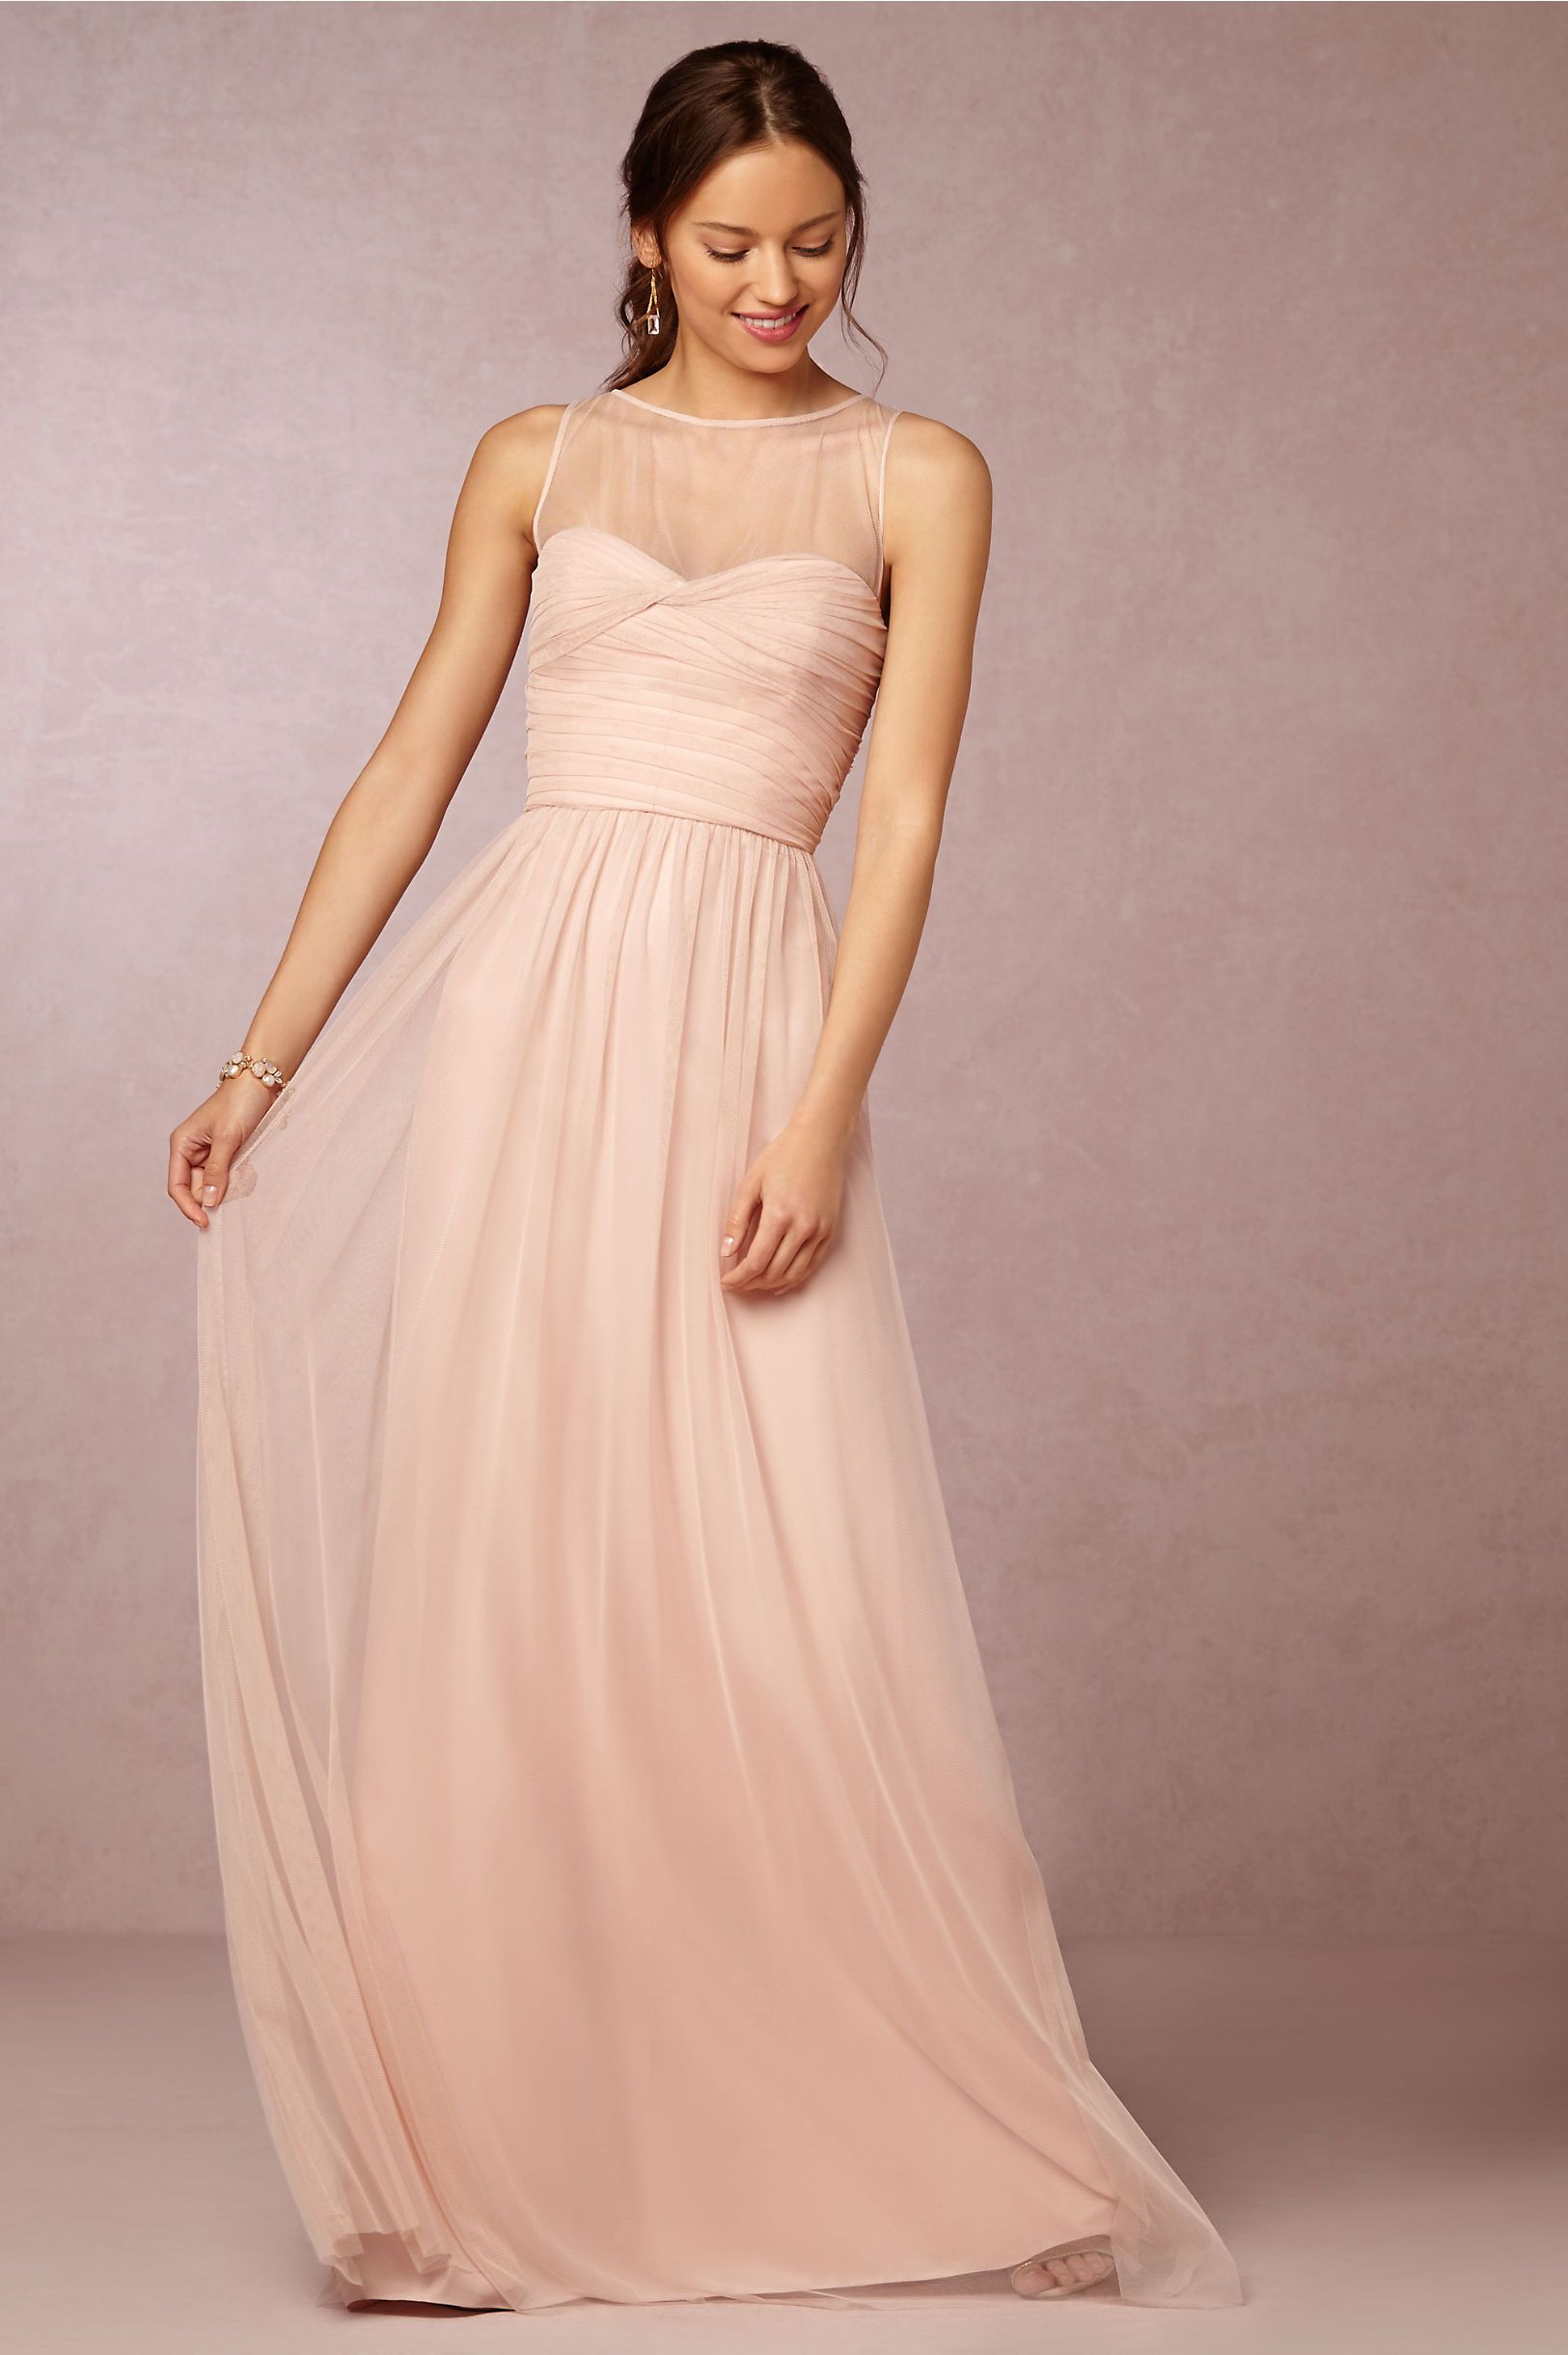 Cheap wedding dresses wedding dresses from H & M to dress according to their